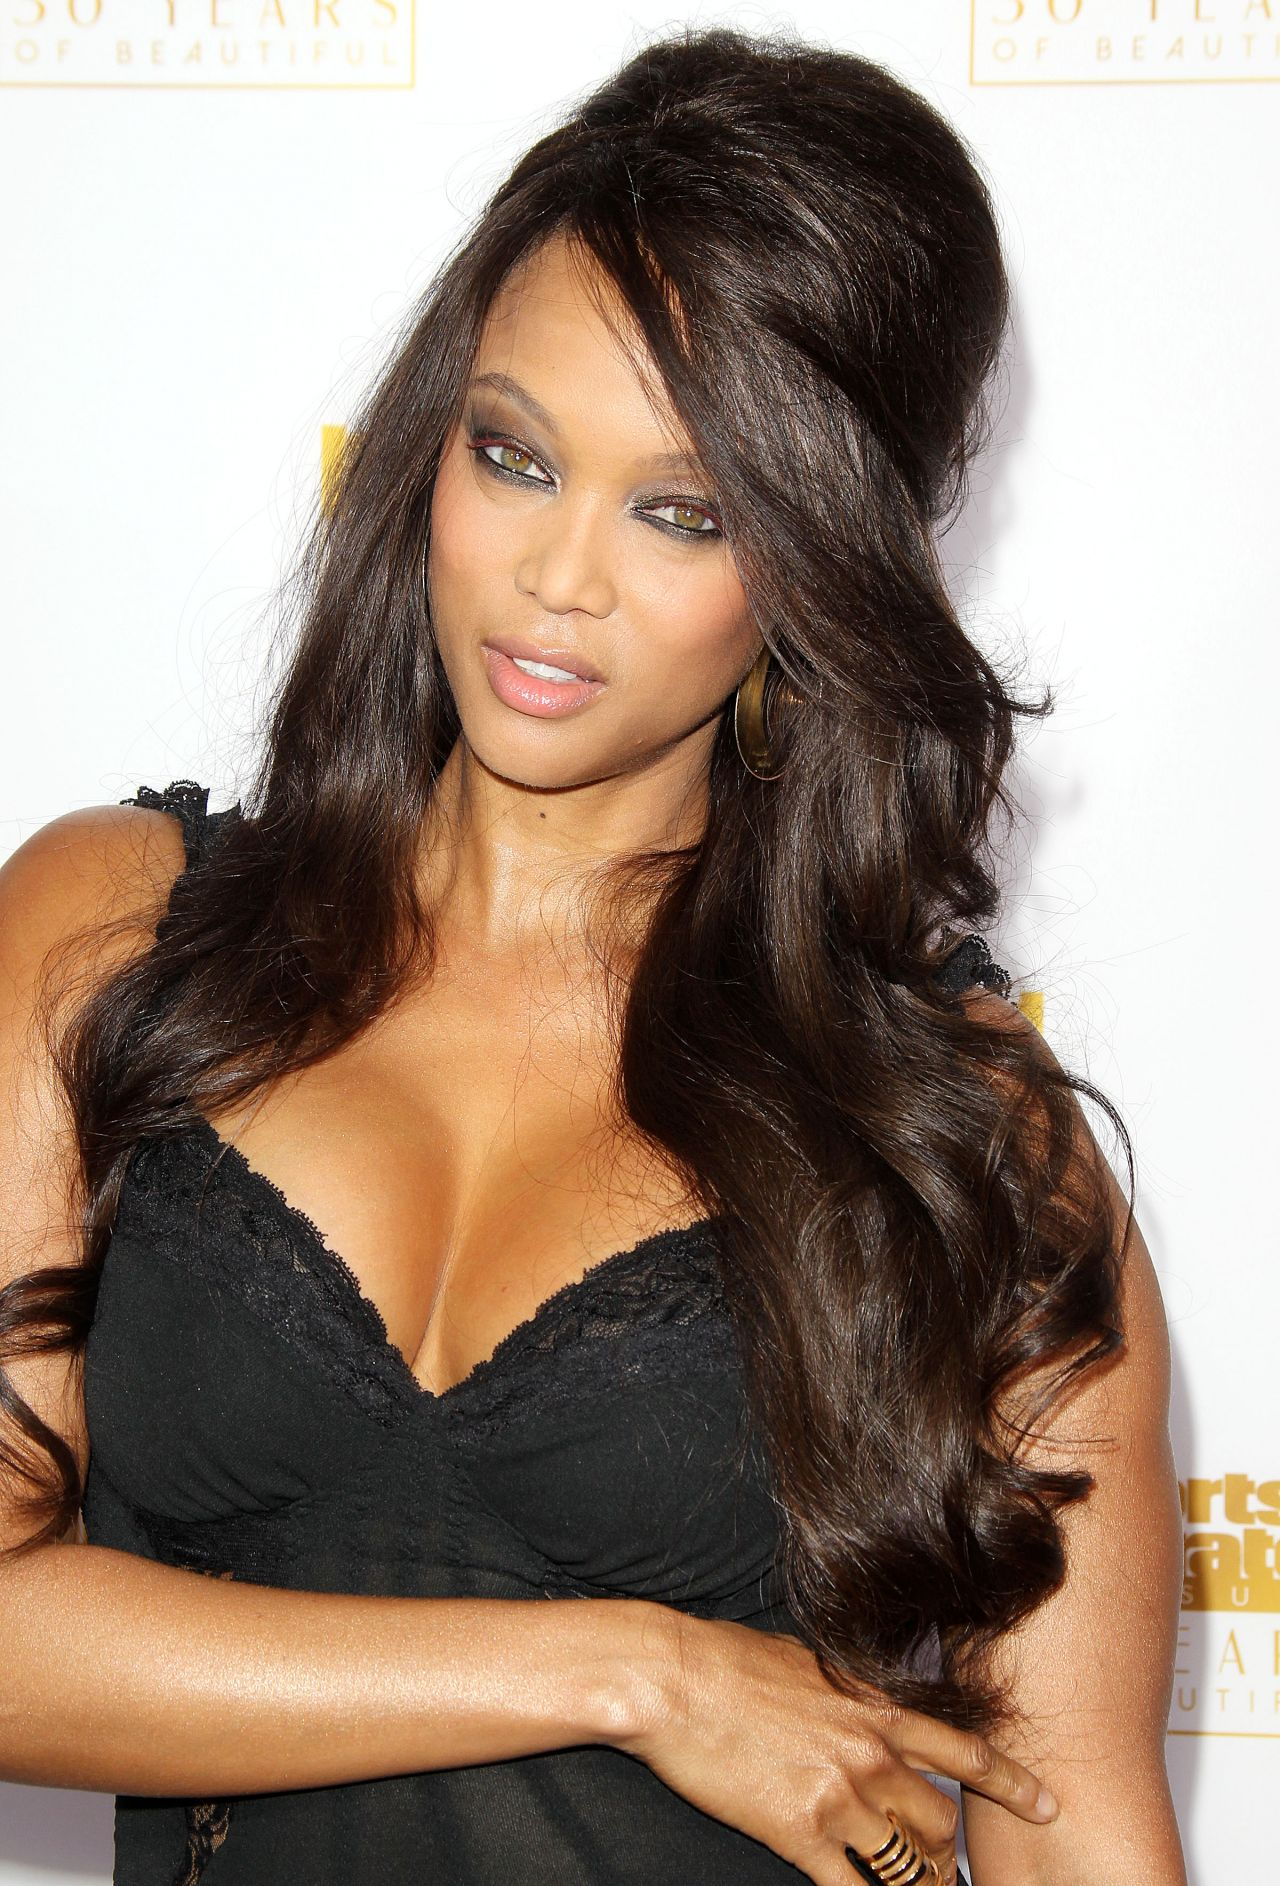 Tyra Banks - 50th Anniversary of the SI Swimsuit Issue Celebration in Hollywood, January 2014